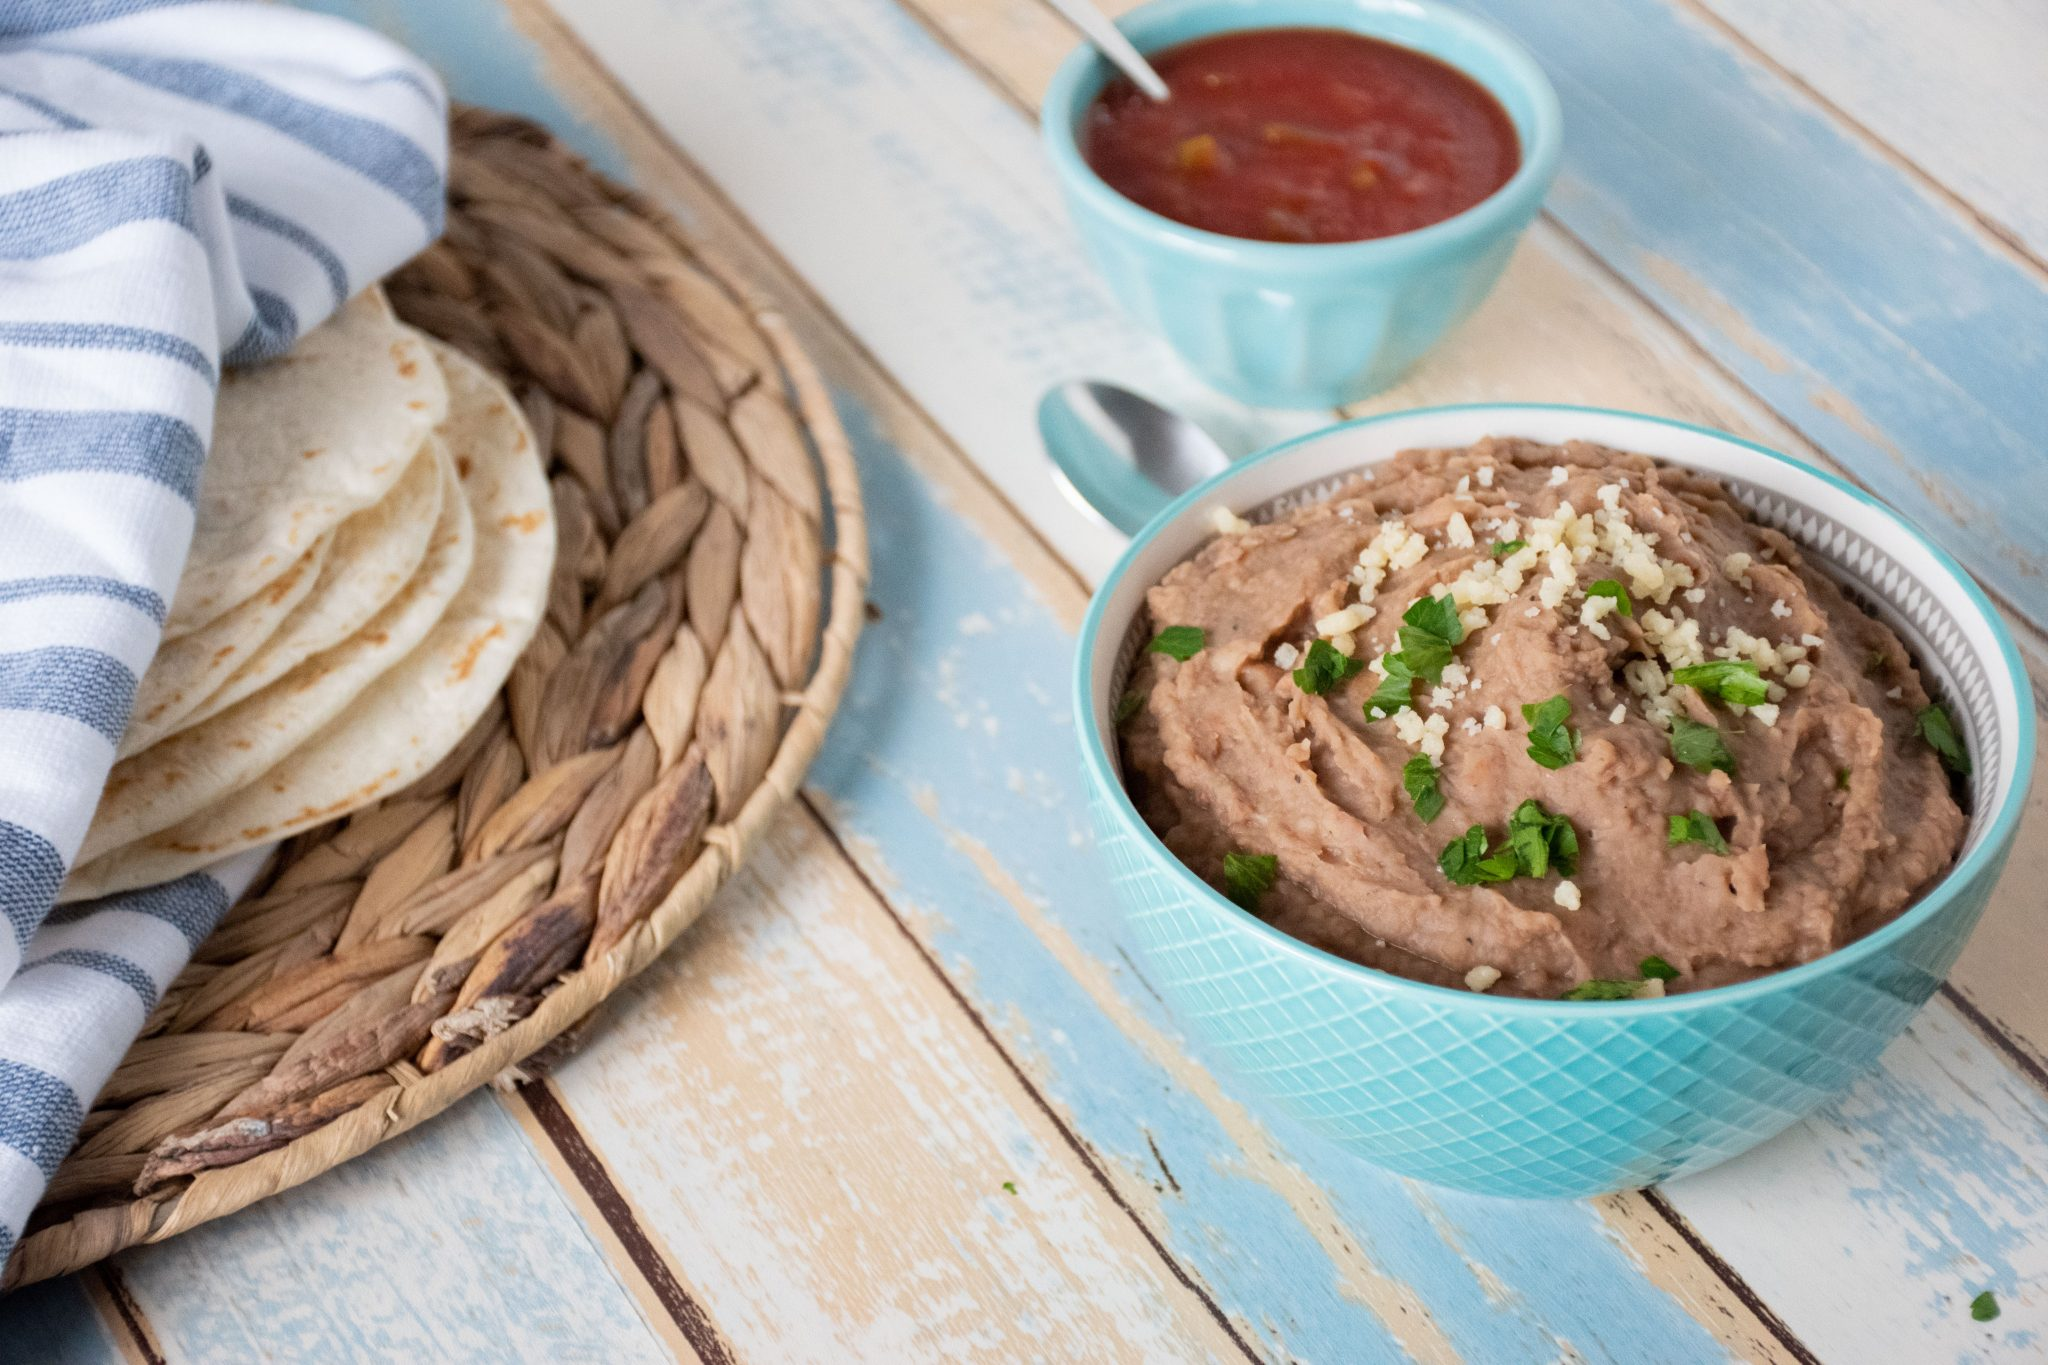 Blue bowl filled with refried beans, with tortillas and salsa in the background